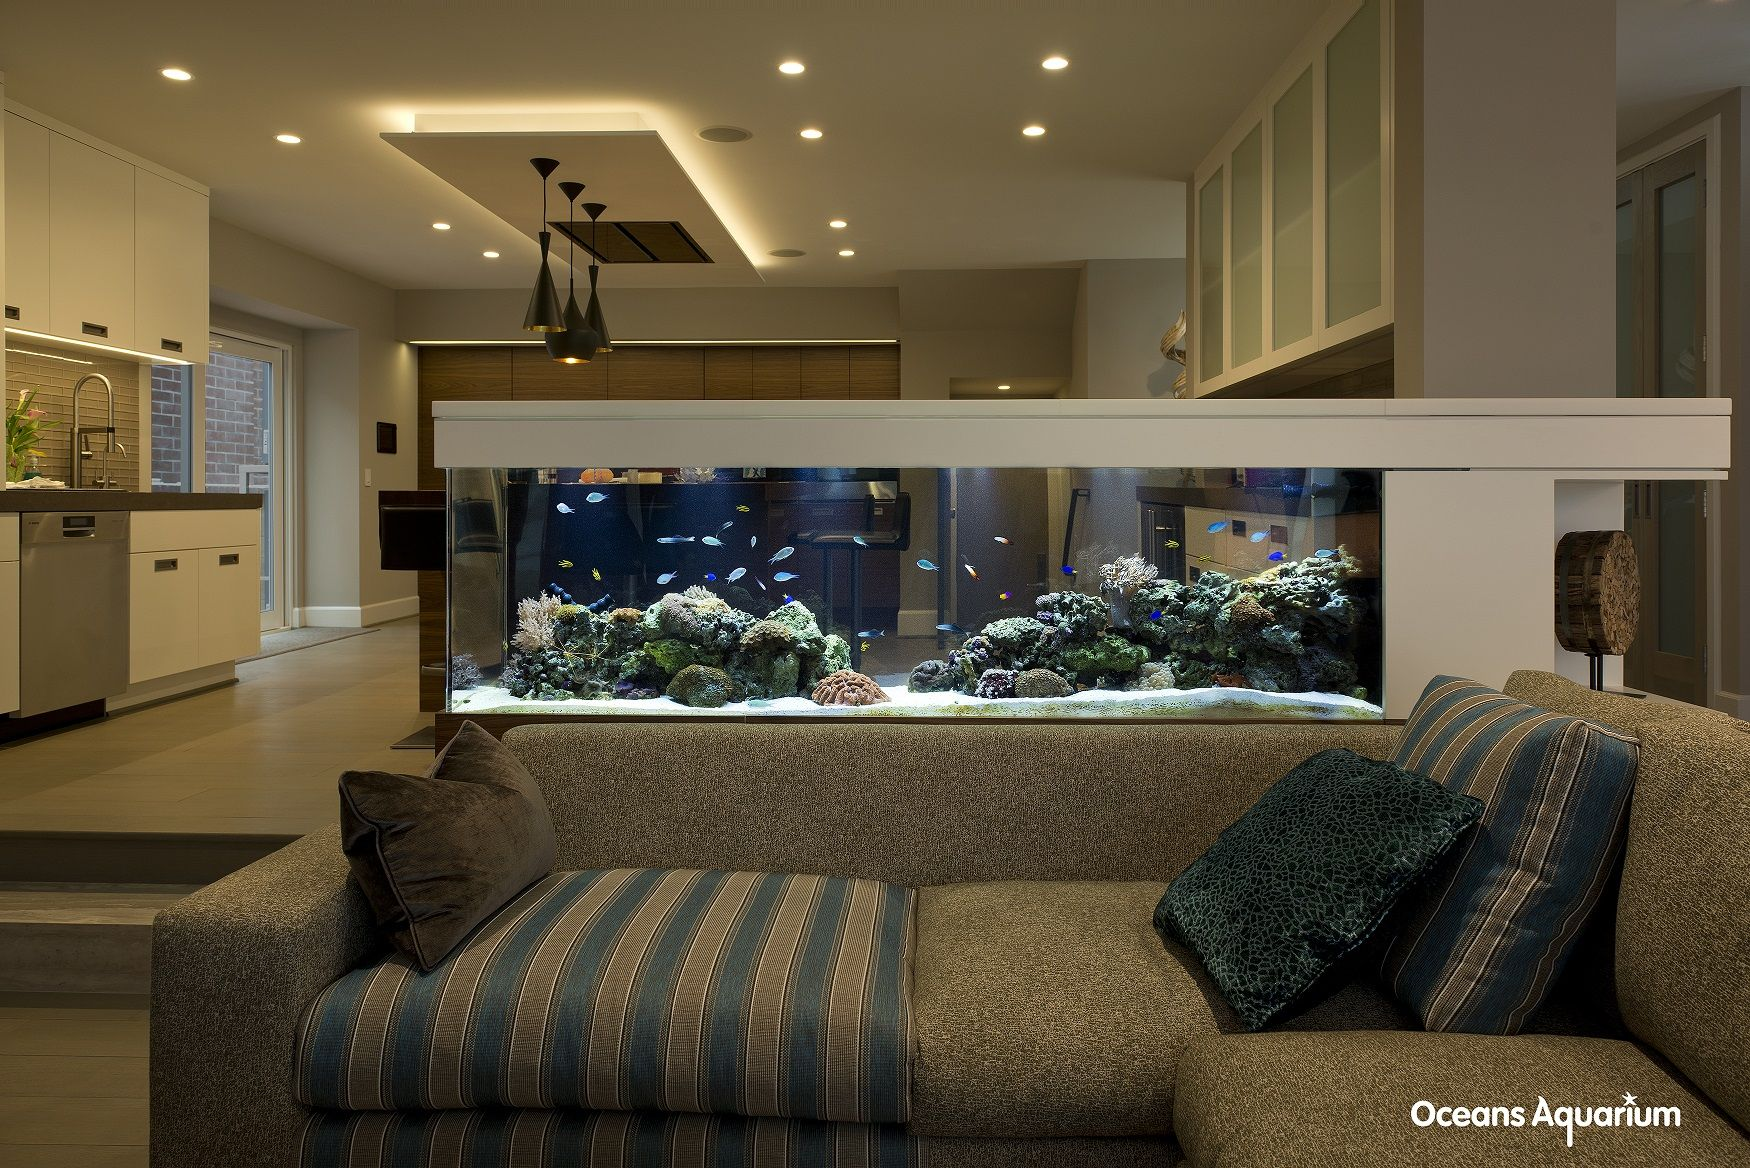 truly amazing interiors with fascinating aquarium aquariums